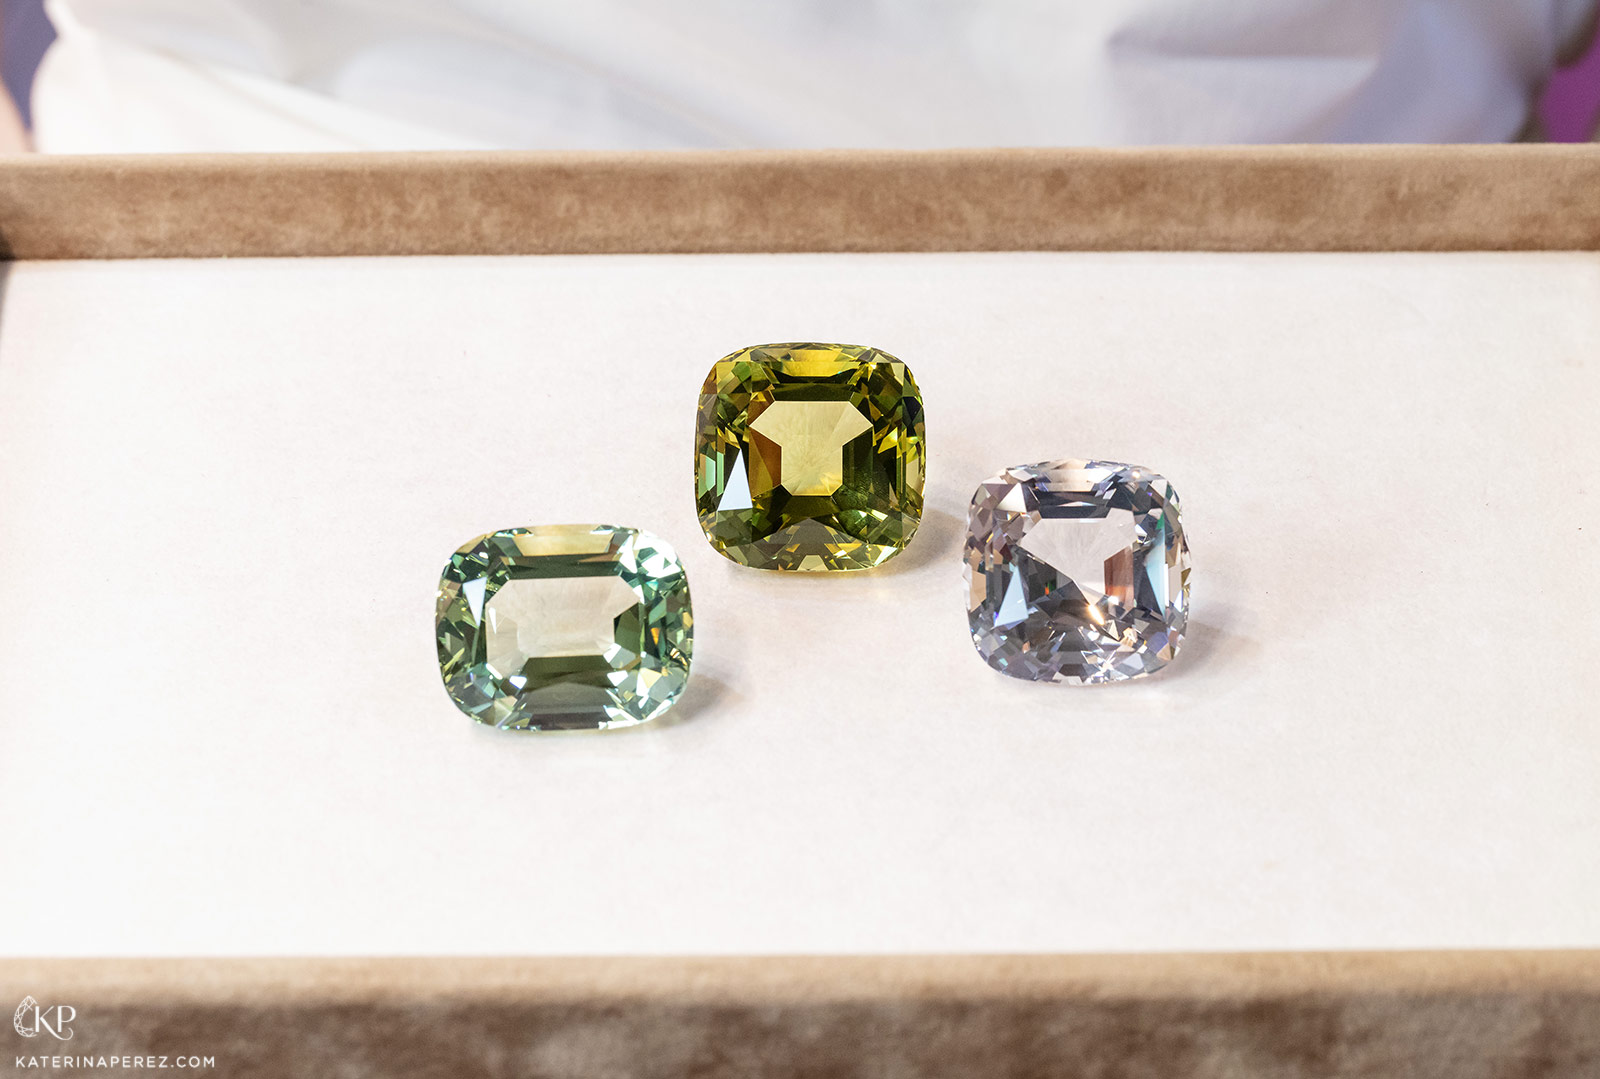 Nomad's Gems green beryl, heliodor and morganite